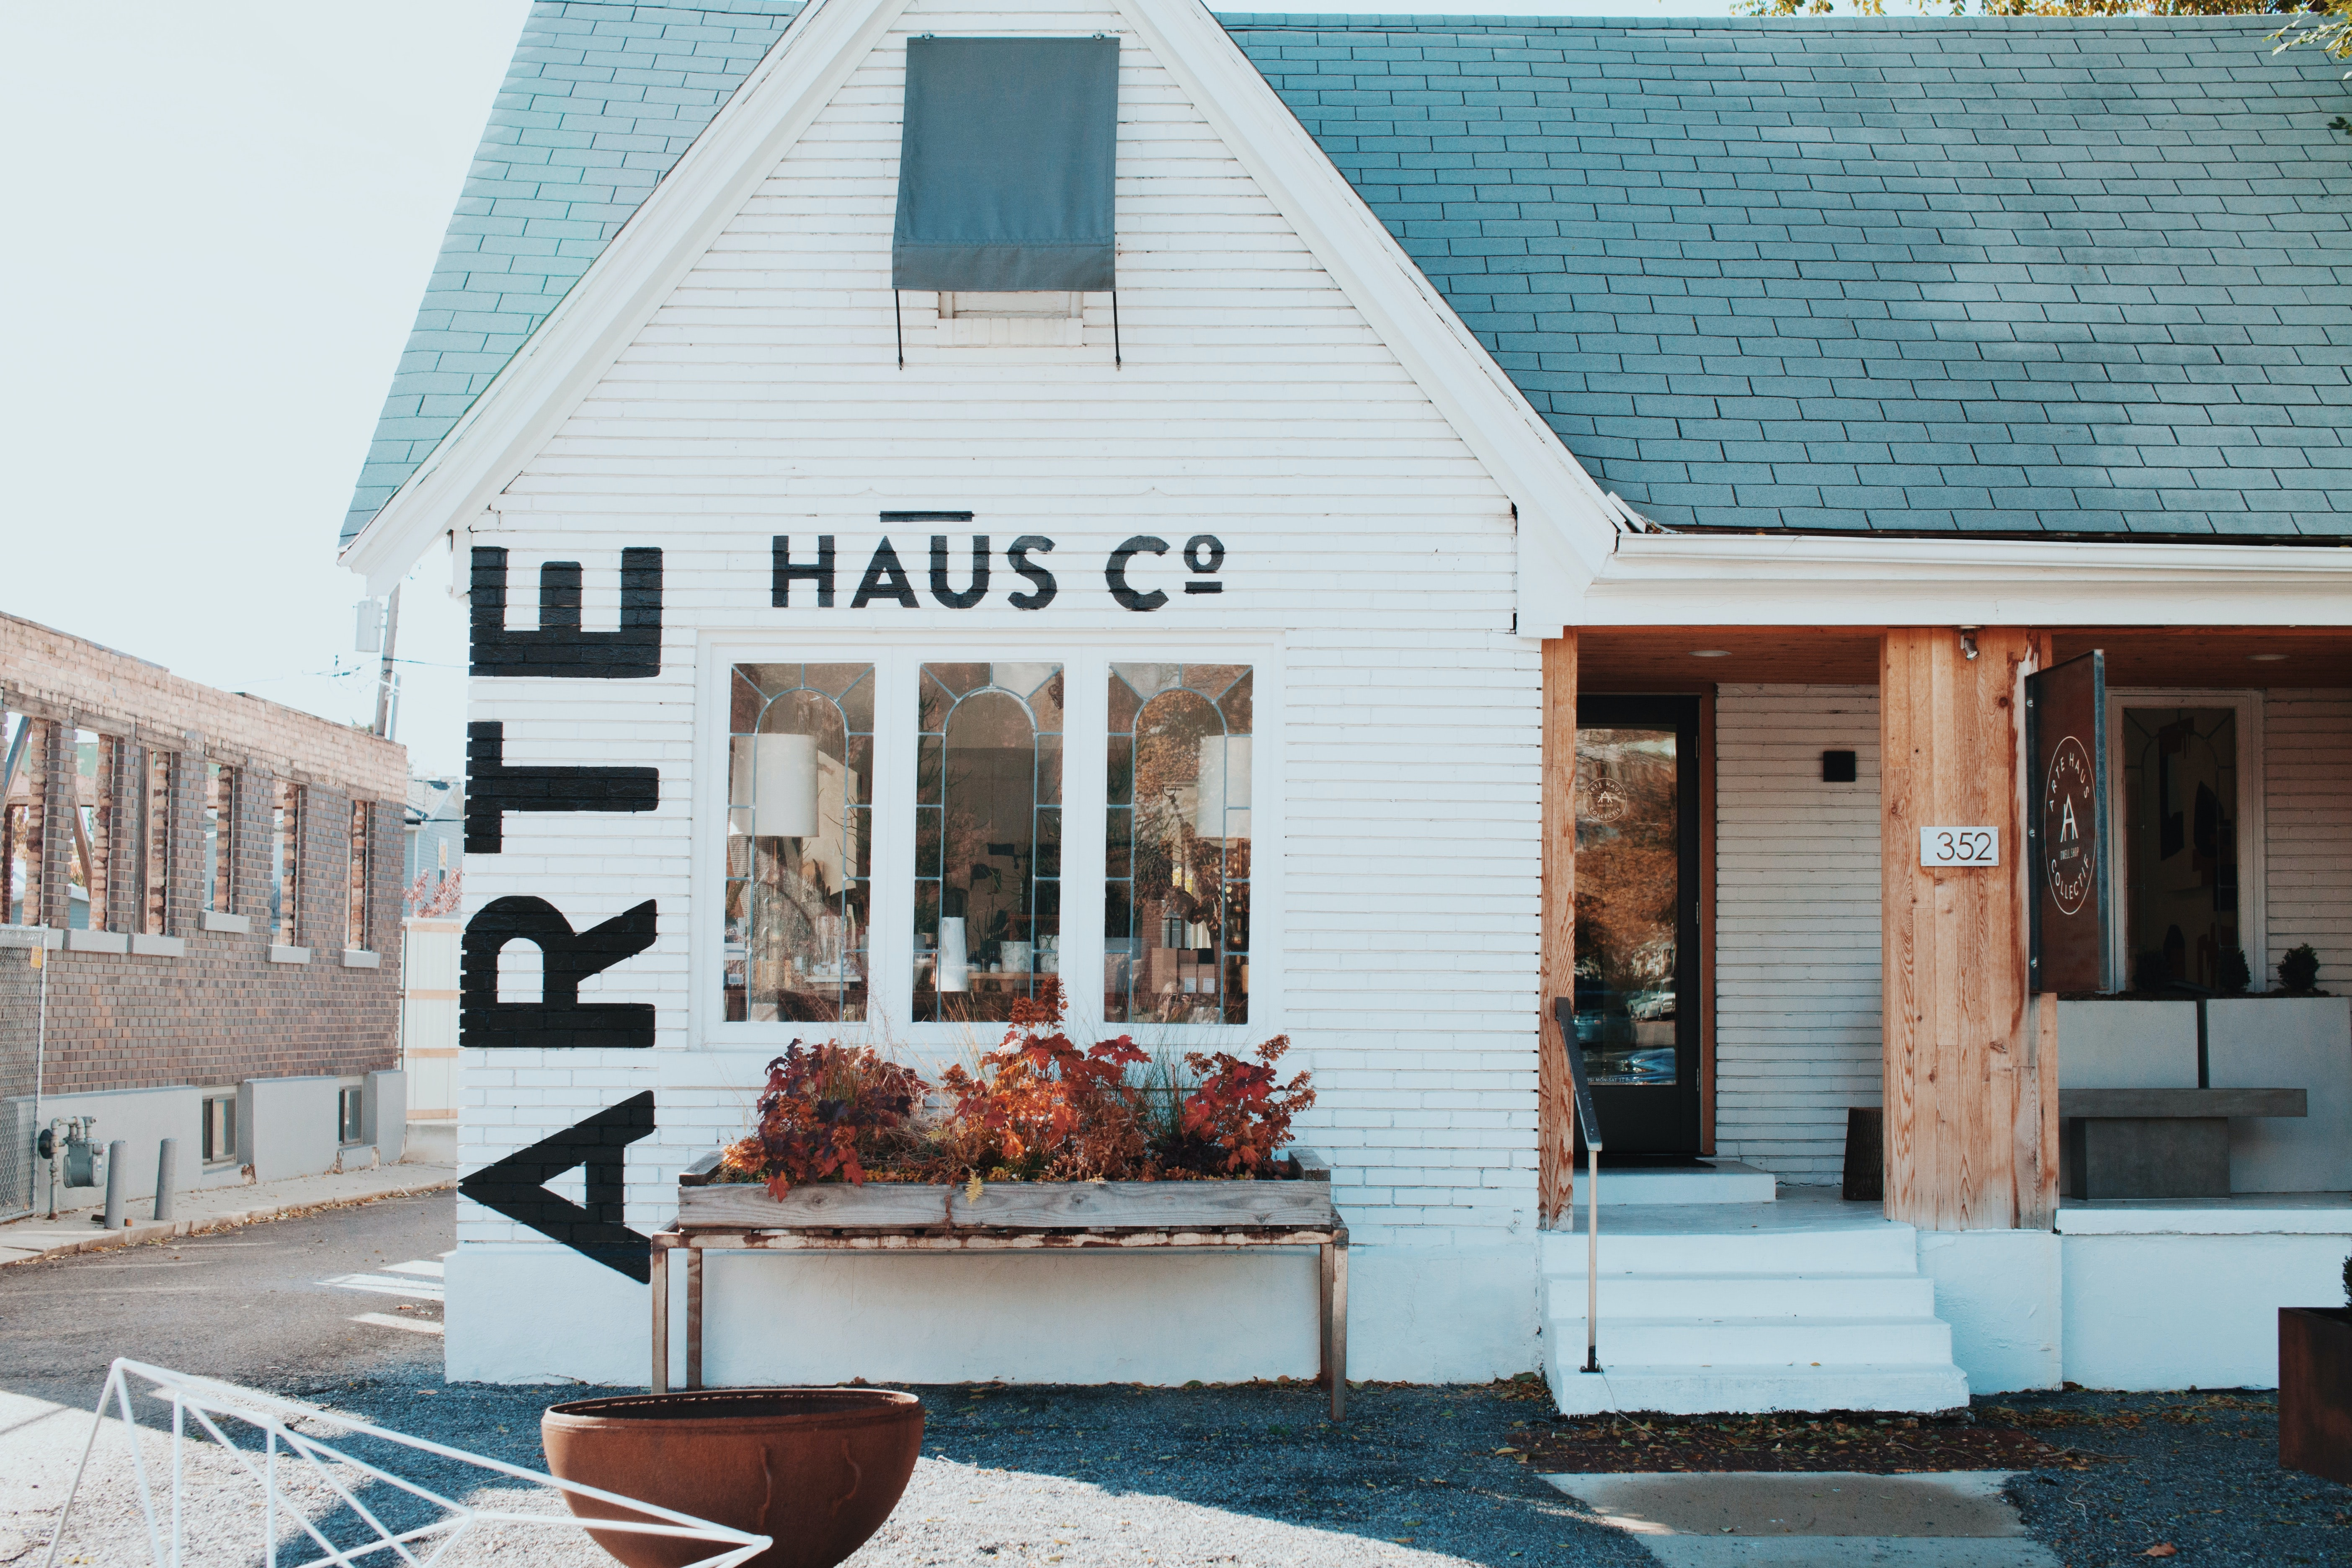 photo of Arte Haus Co building at daytime